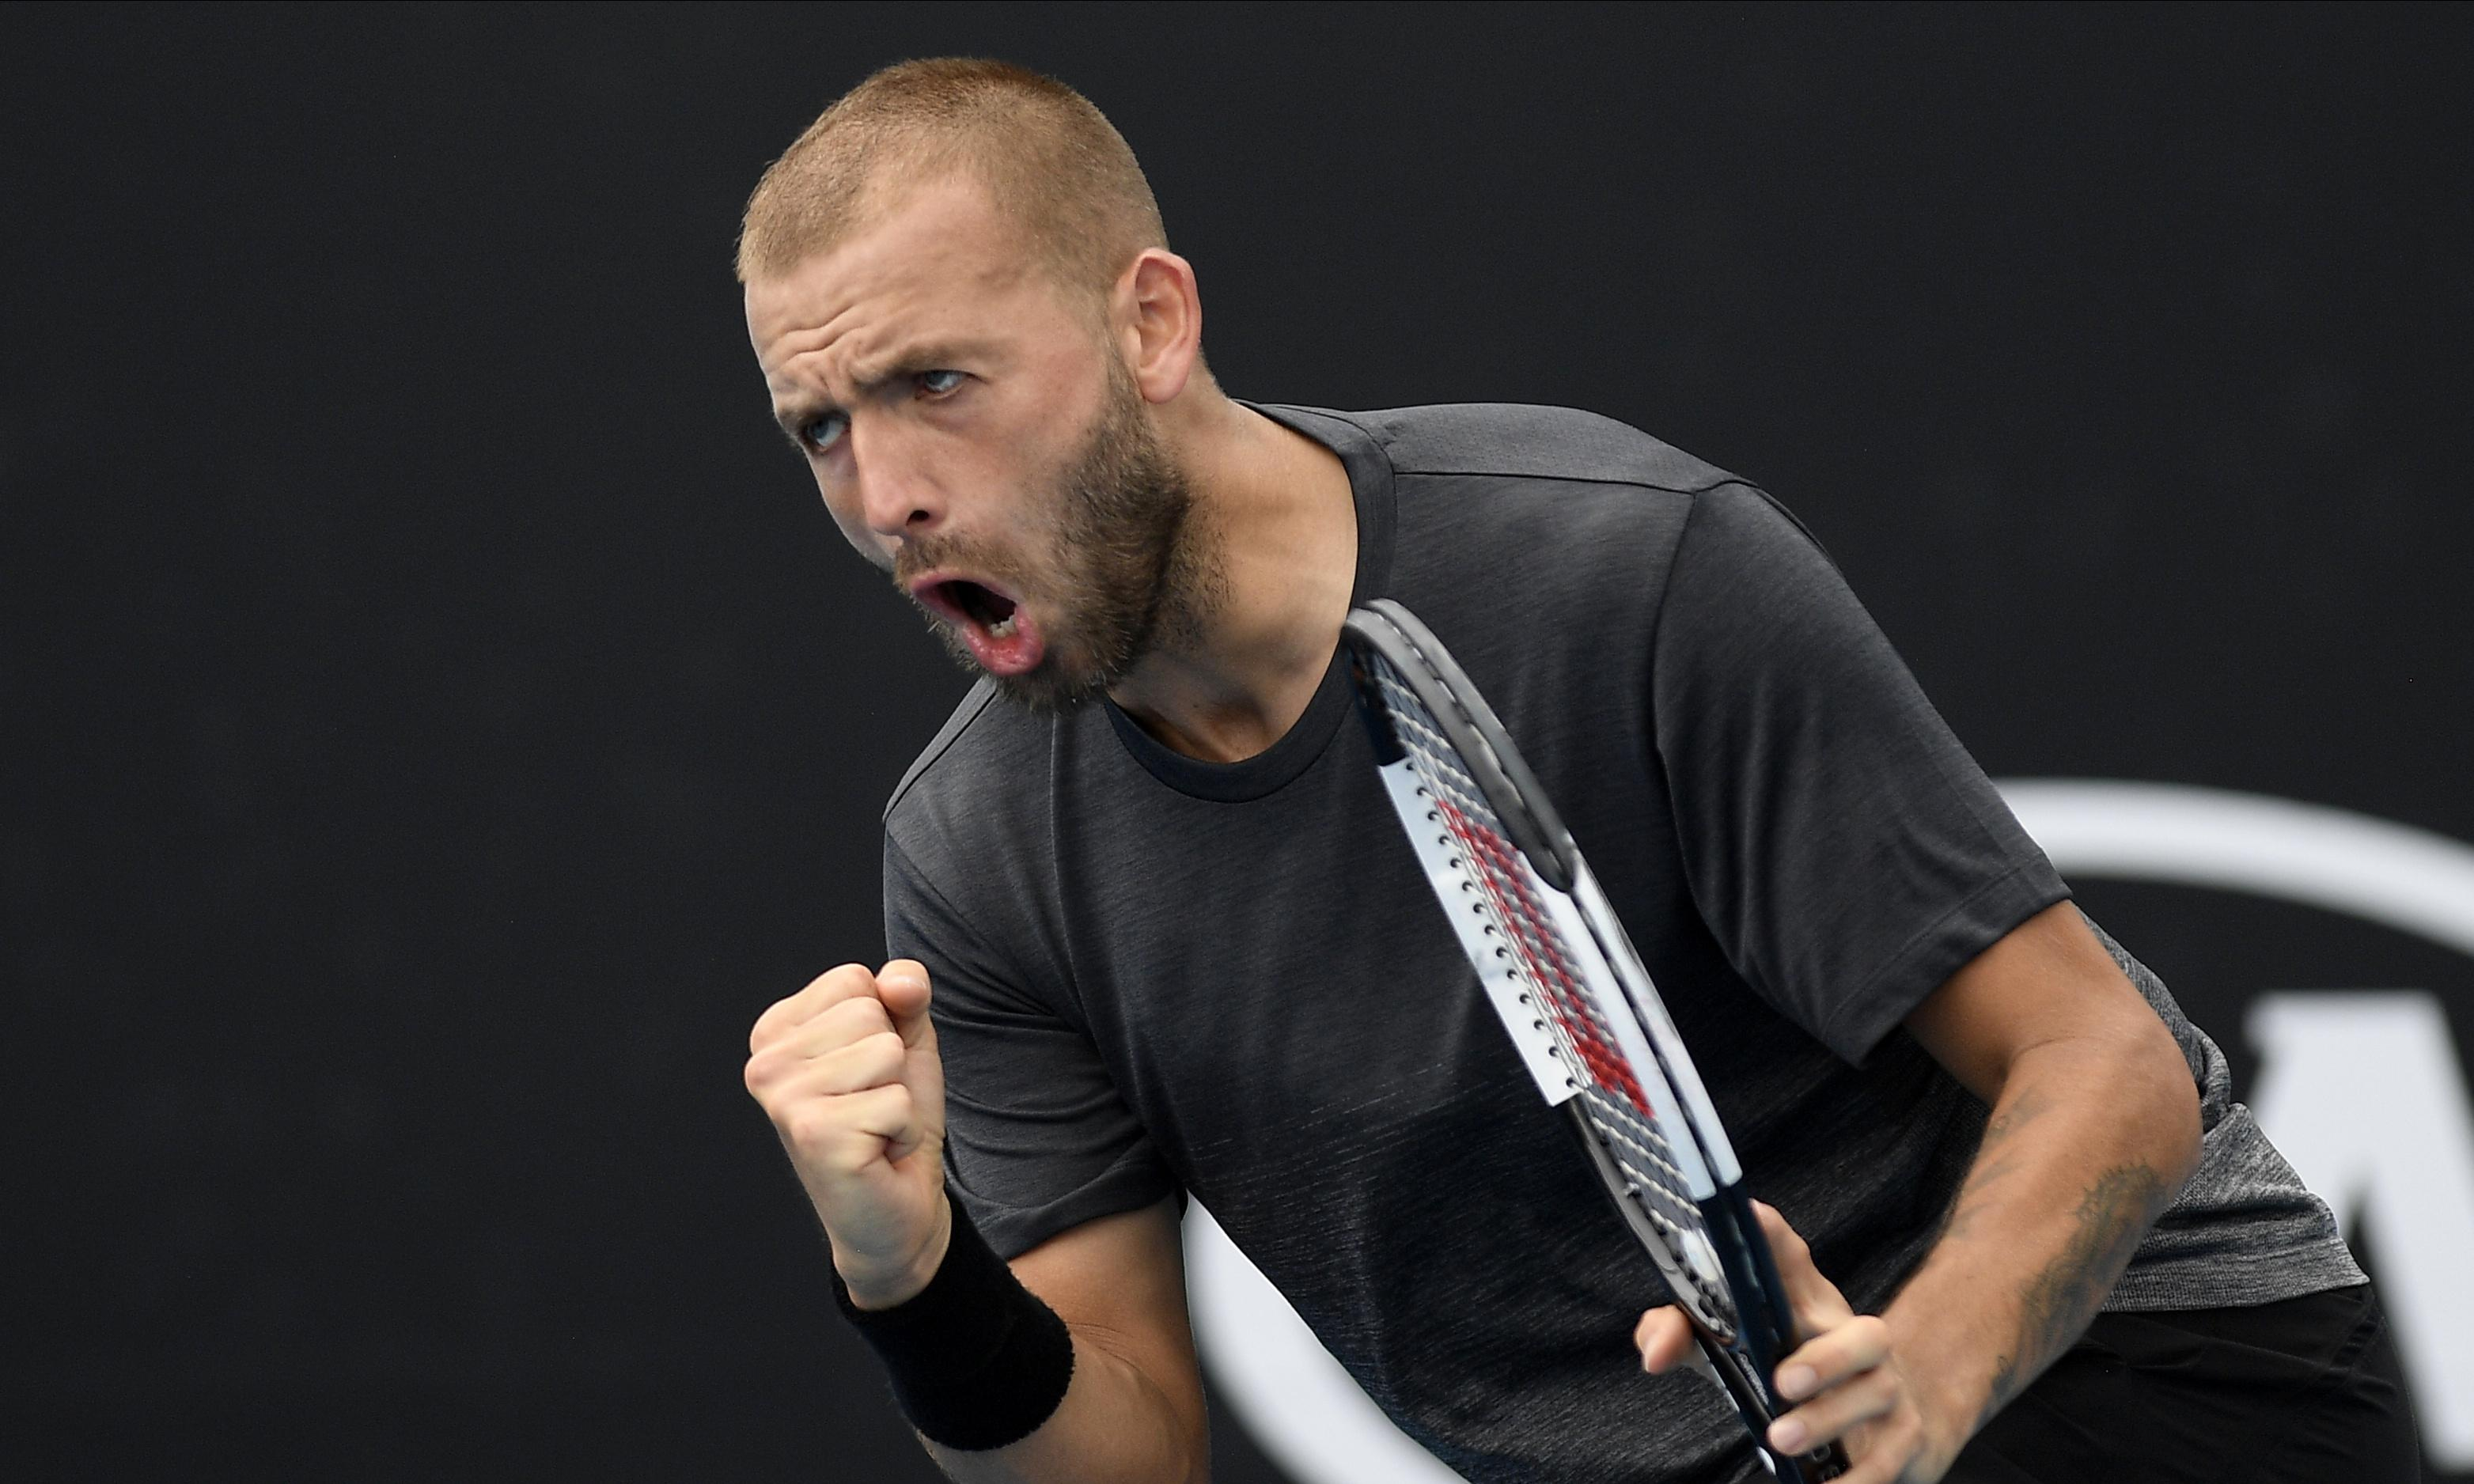 Dan Evans rallies to join Novak Djokovic in Australian Open second round